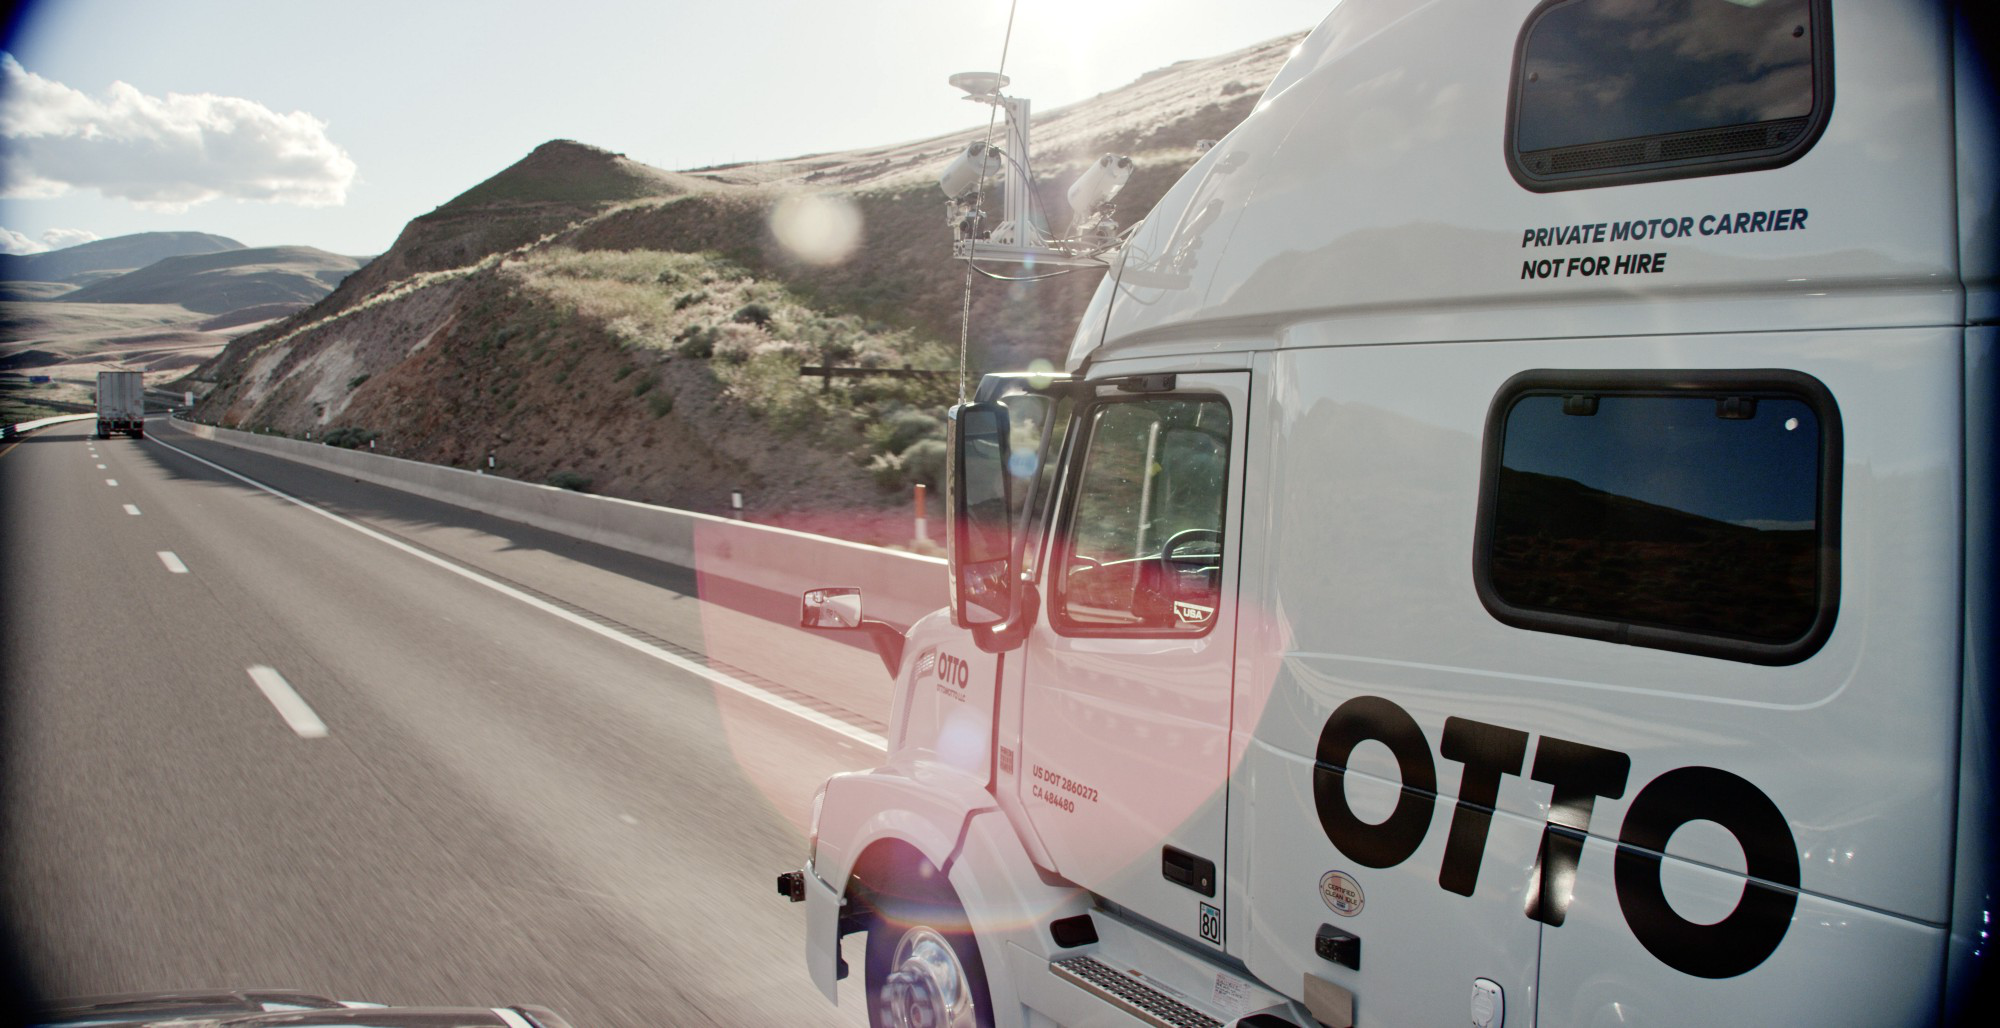 Uber enters trucking via Otto acquisition, co.'s announce plans for freight matching system